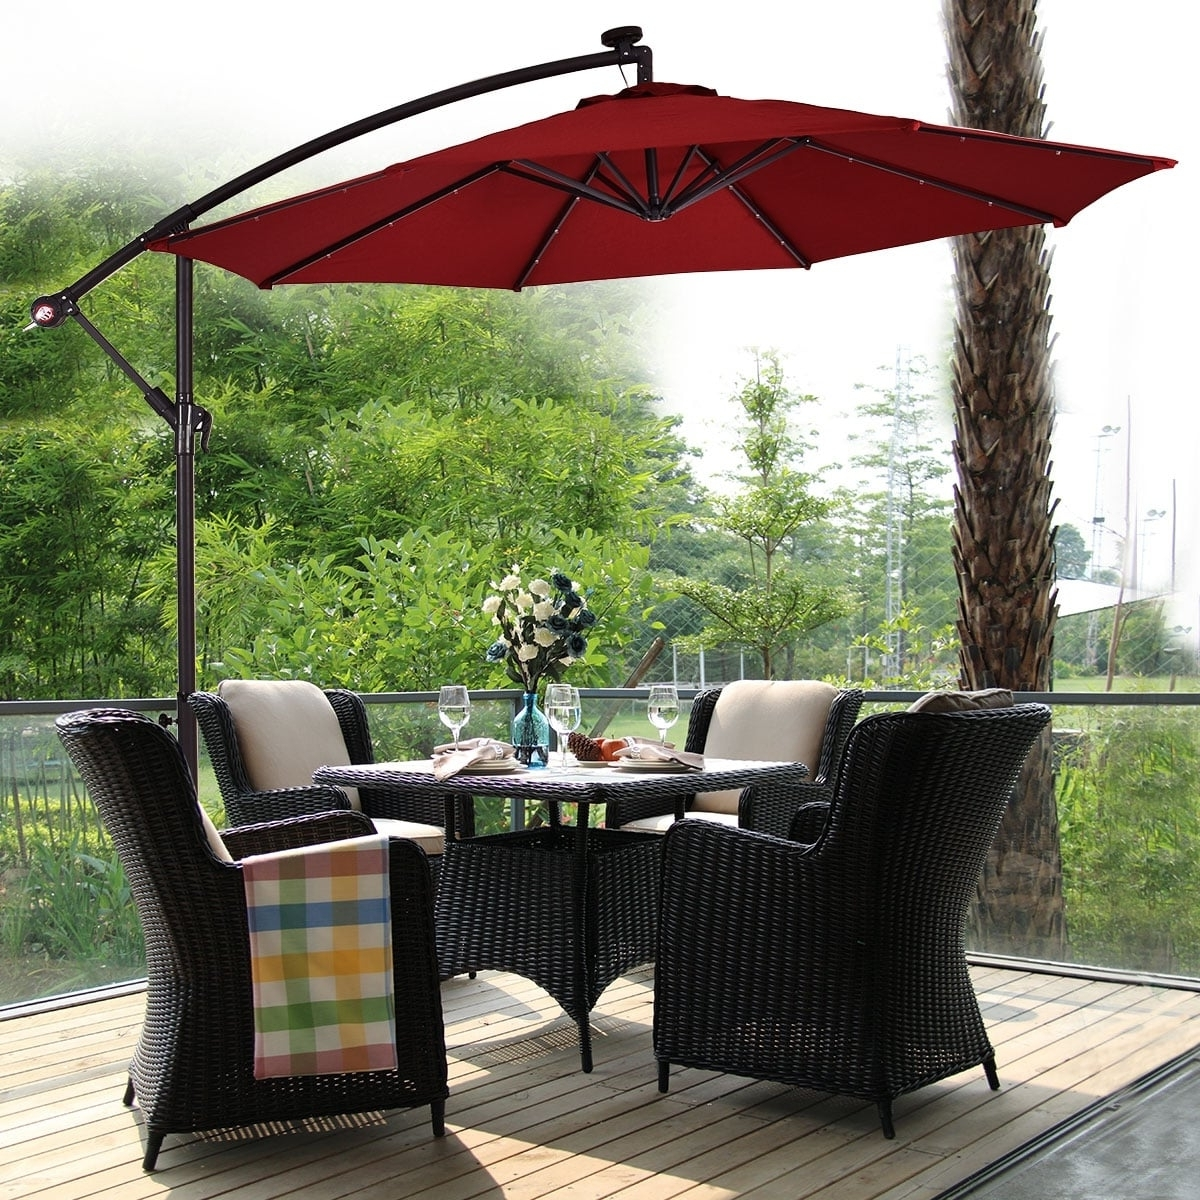 Our Best Patio For Well Known Extended Patio Umbrellas (View 14 of 20)